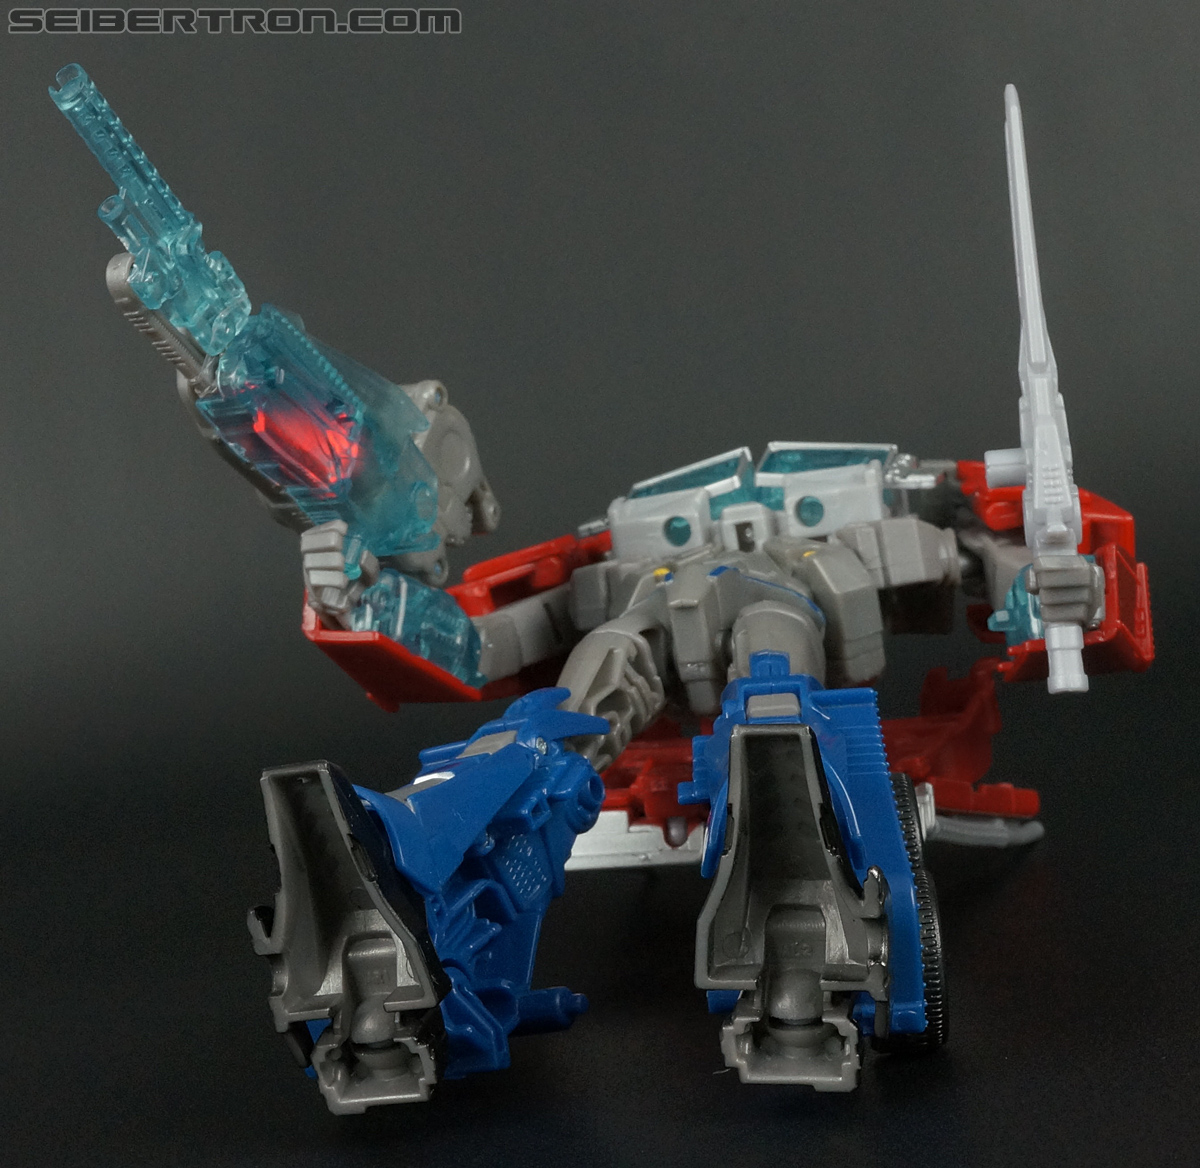 Transformers Prime: Robots In Disguise Optimus Prime (Image #107 of 176)